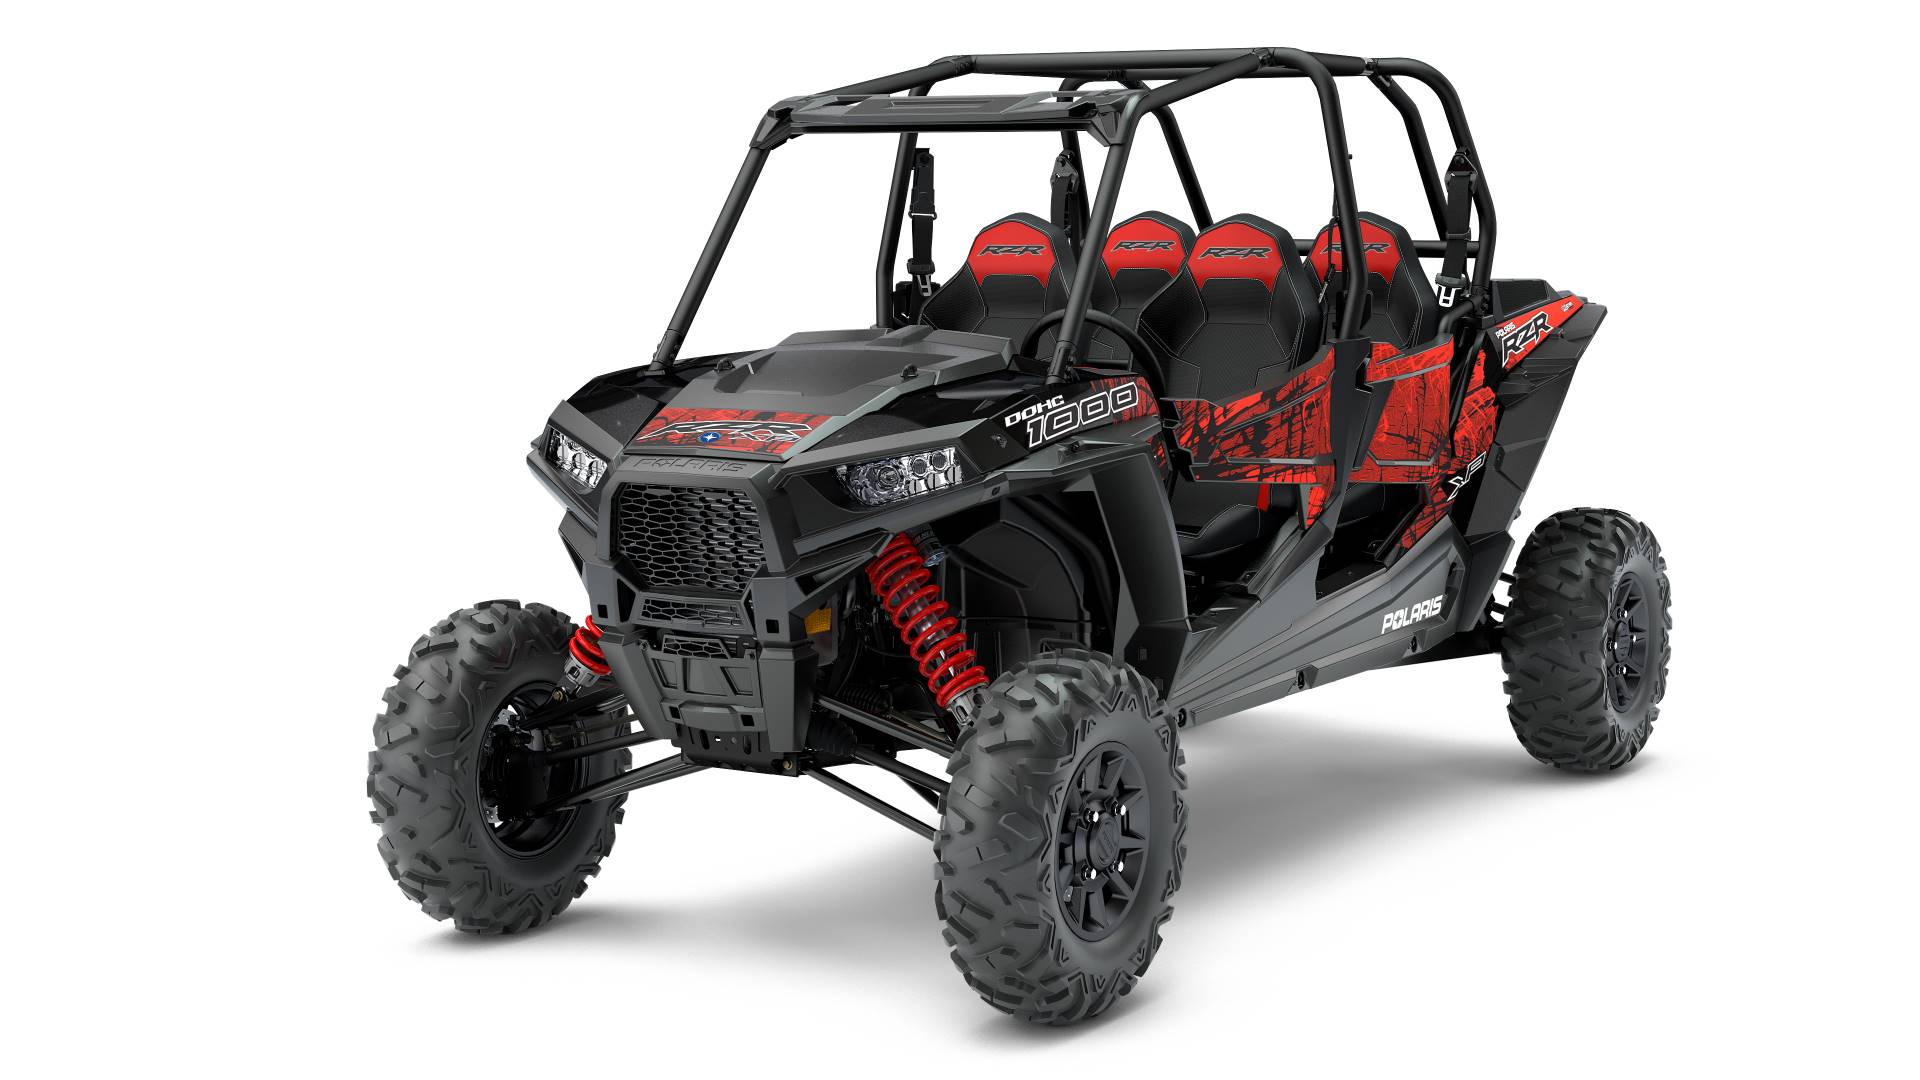 2017 Polaris RZR XP 4 1000 EPS for sale 86924